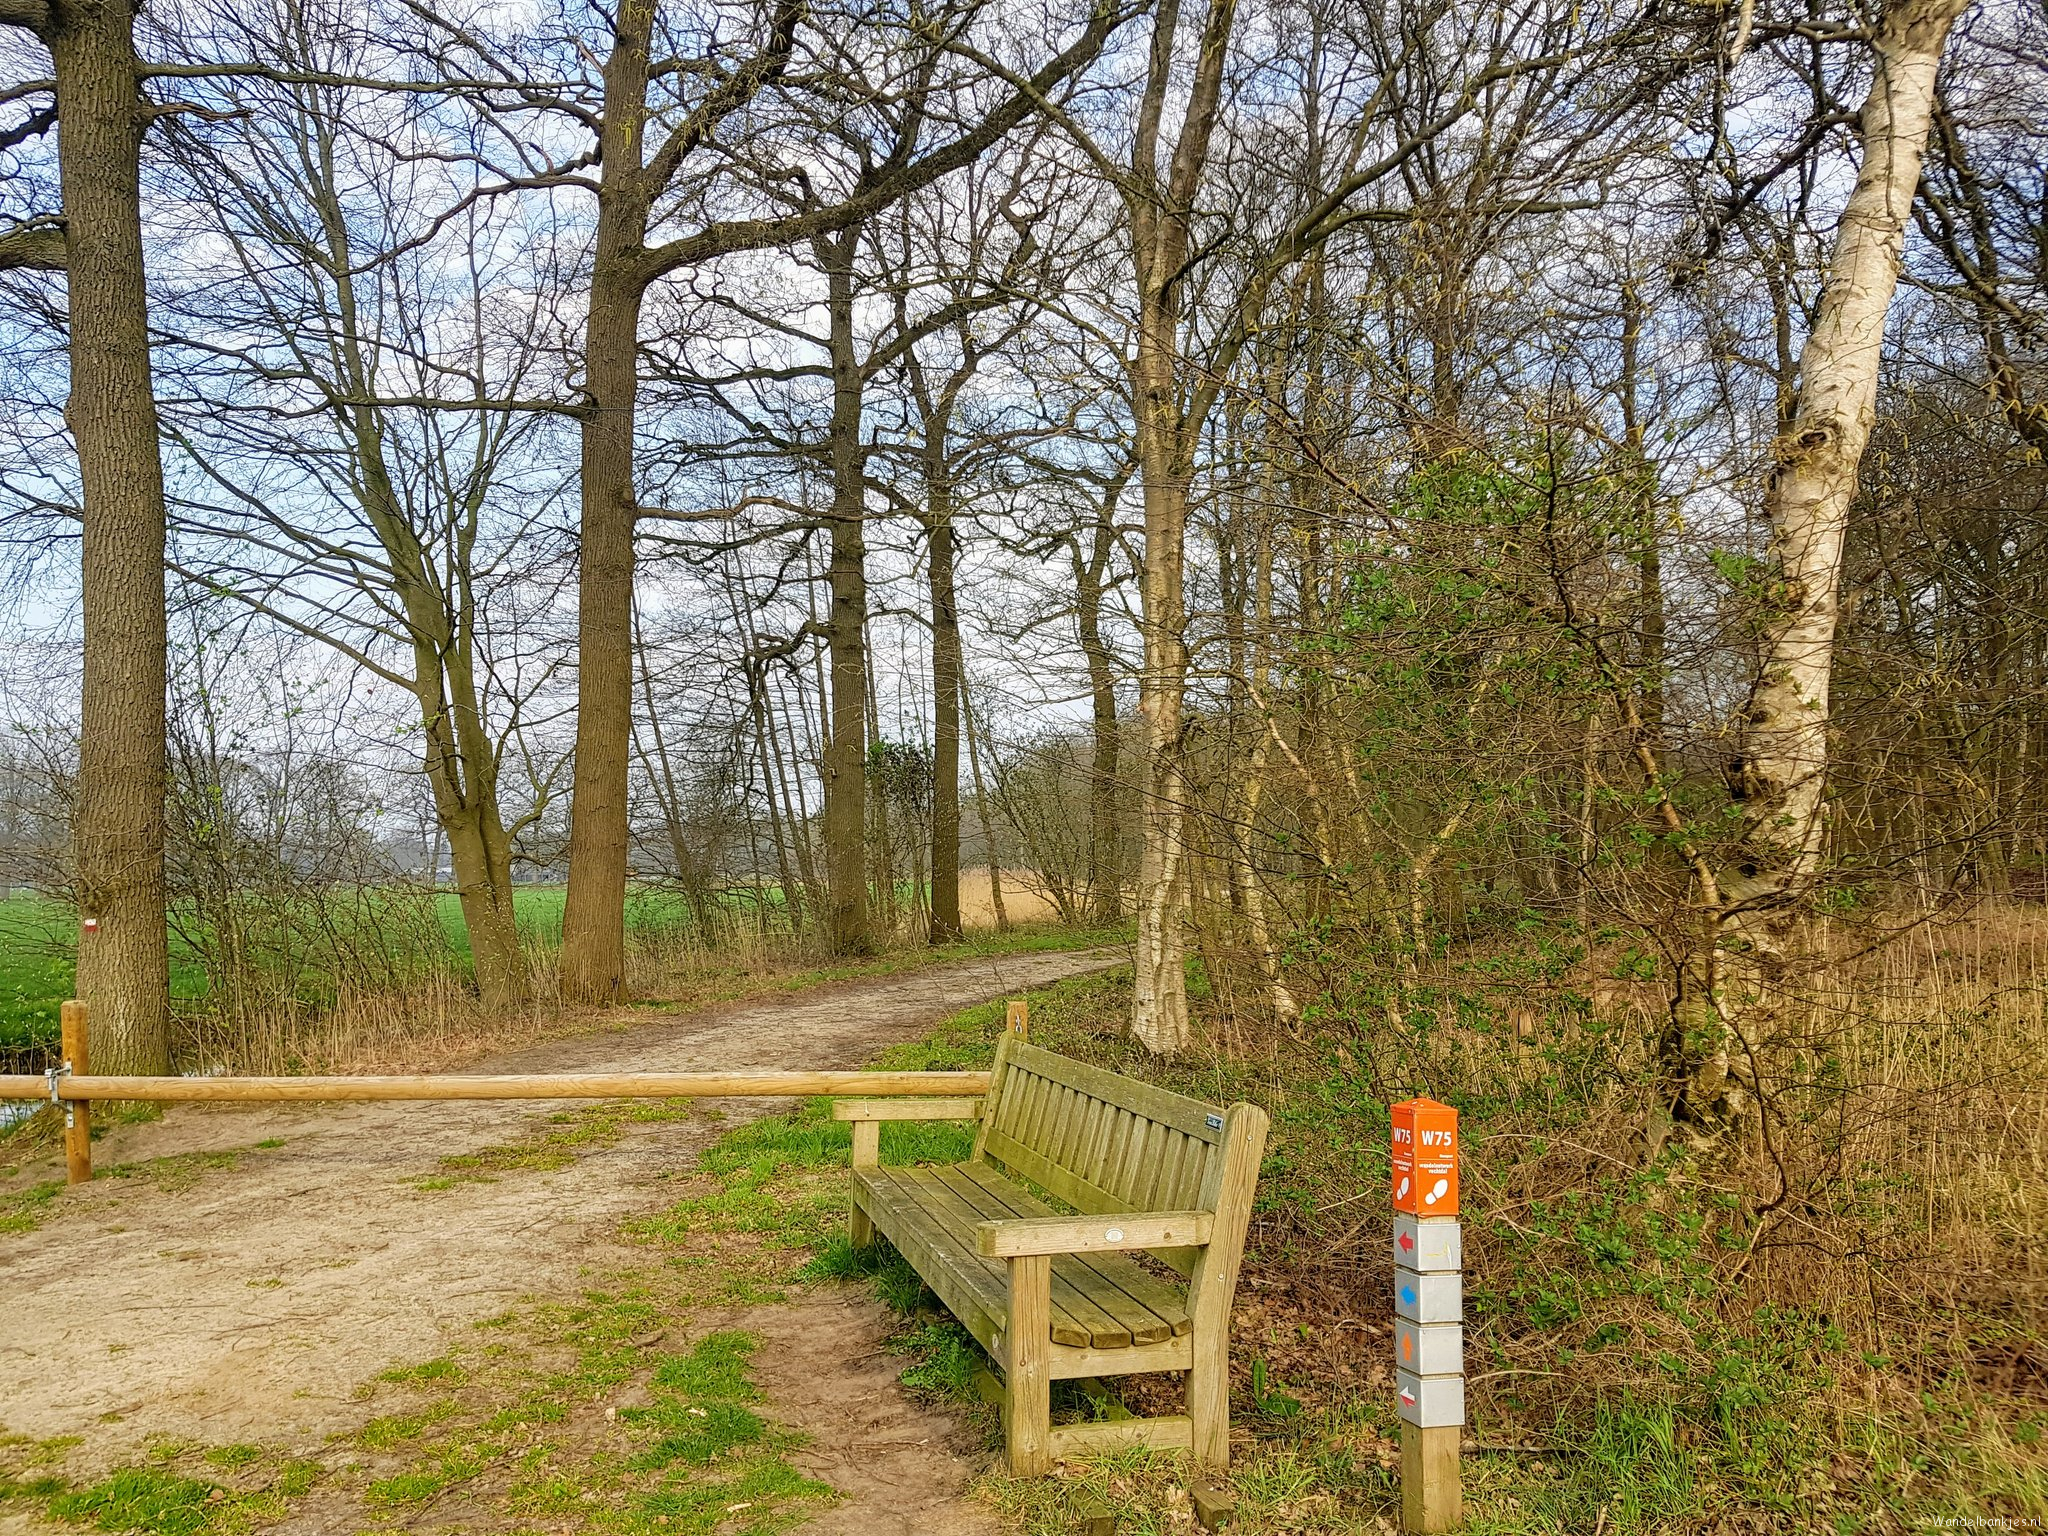 rt-wolf-walking-plan-dalfsen-walking benches-https-t-co-7kvrflcb9c